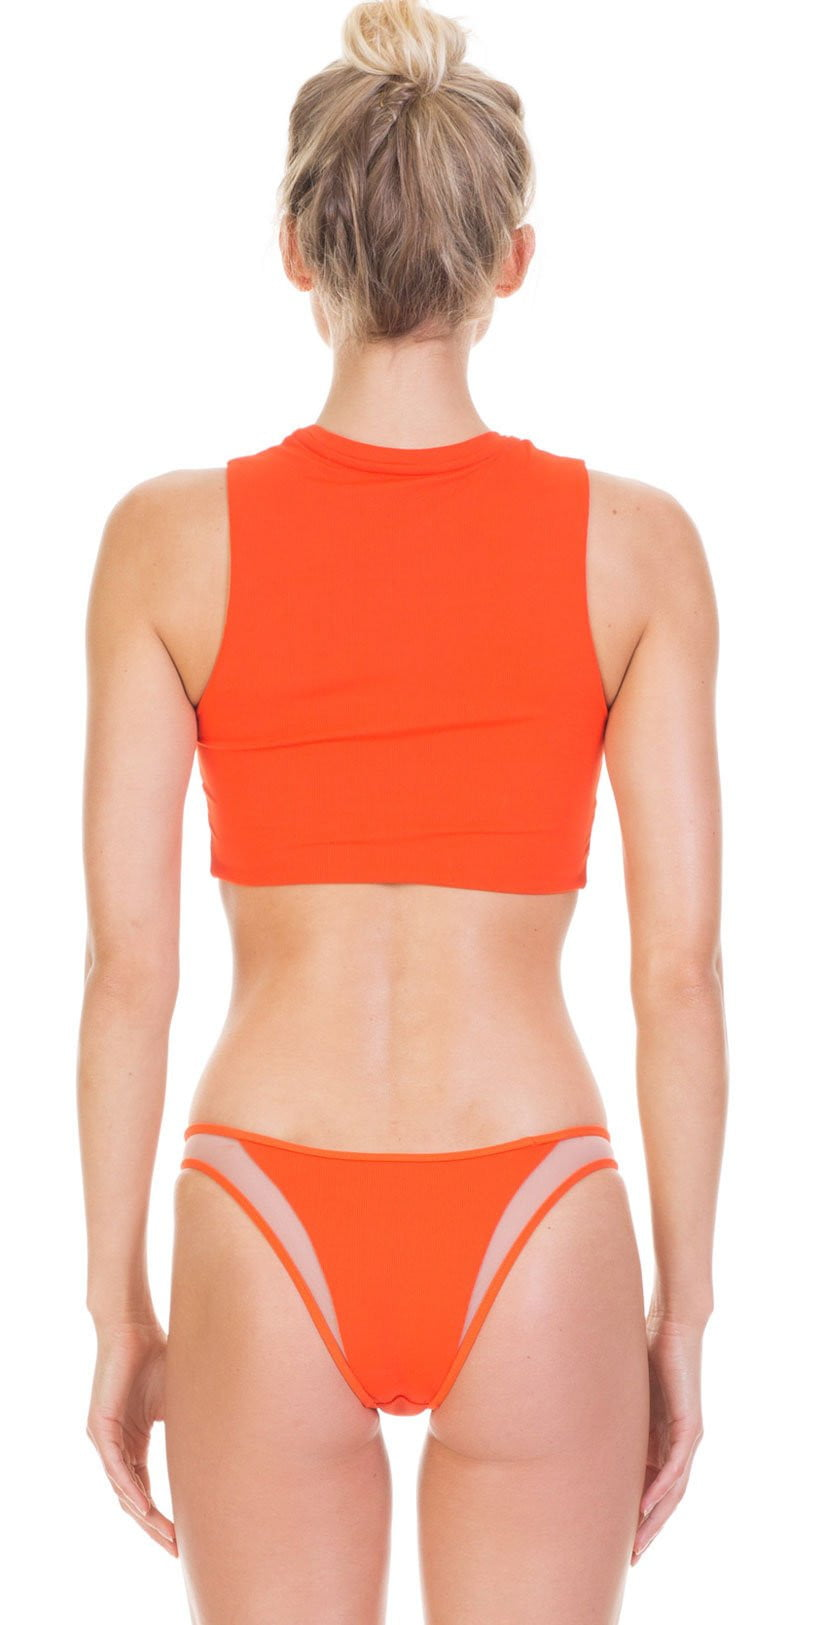 Tori Praver Fine Rib Emmy Swim Tank Top In Hot Orange 1S19SUEMNR-HTO: